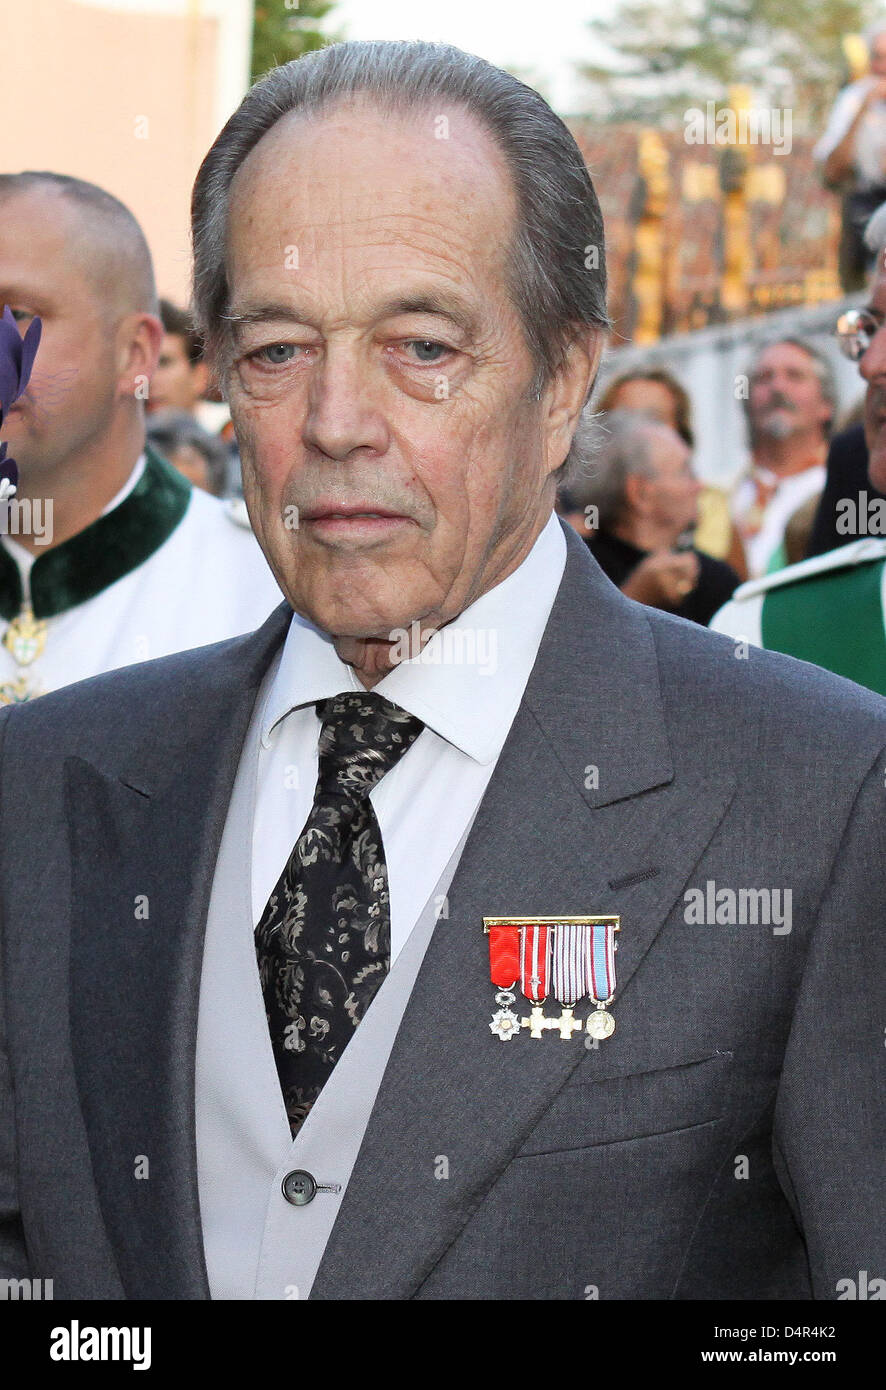 Prince Henri d?Orleans (76) after his church wedding in Arcangues near Biarritz in the Basque country, France, 26 - Stock Image